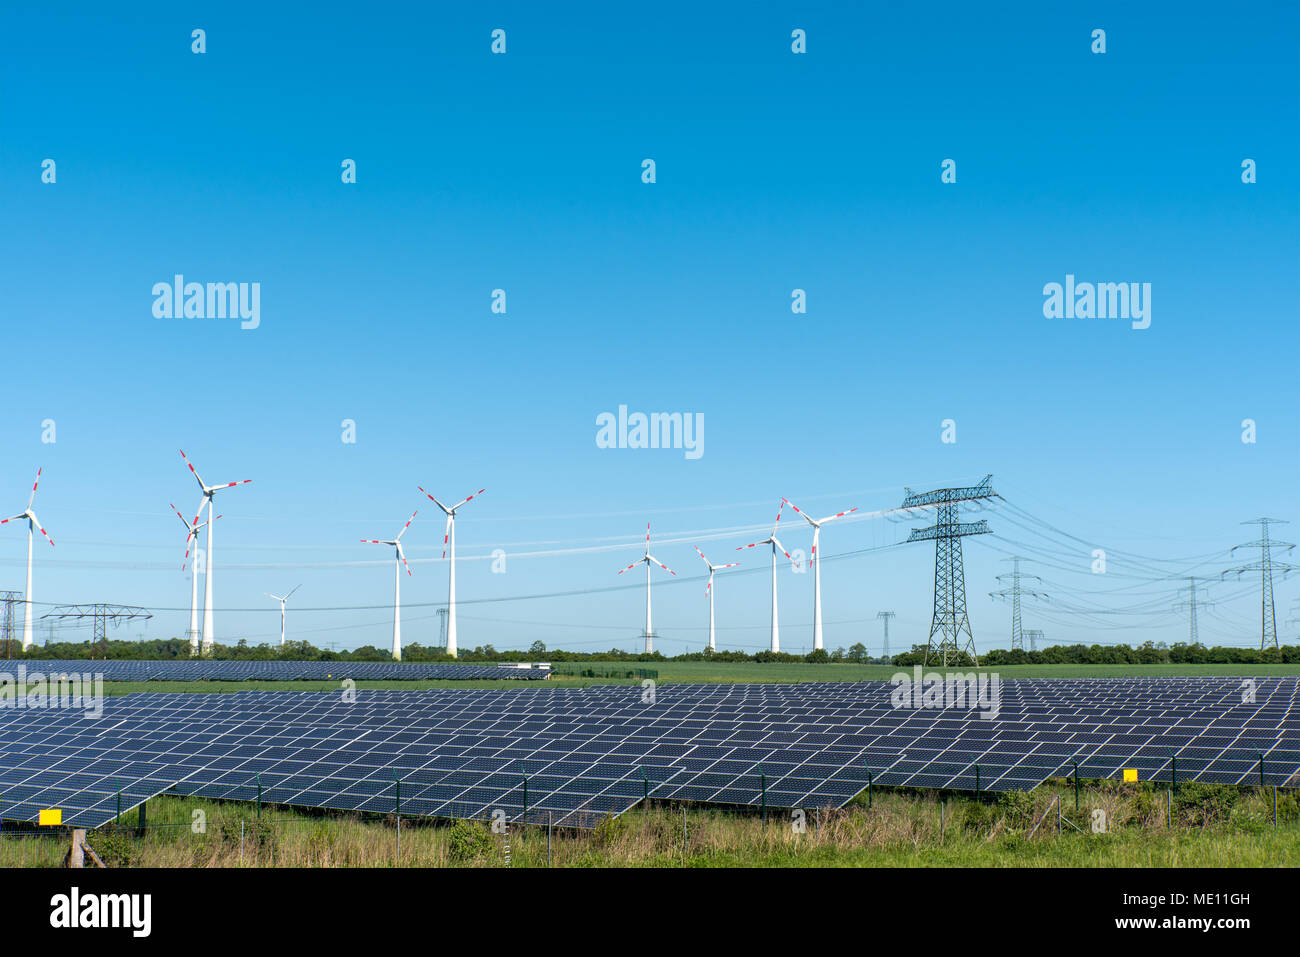 Renewable energy plants and power supply lines seen in Germany - Stock Image